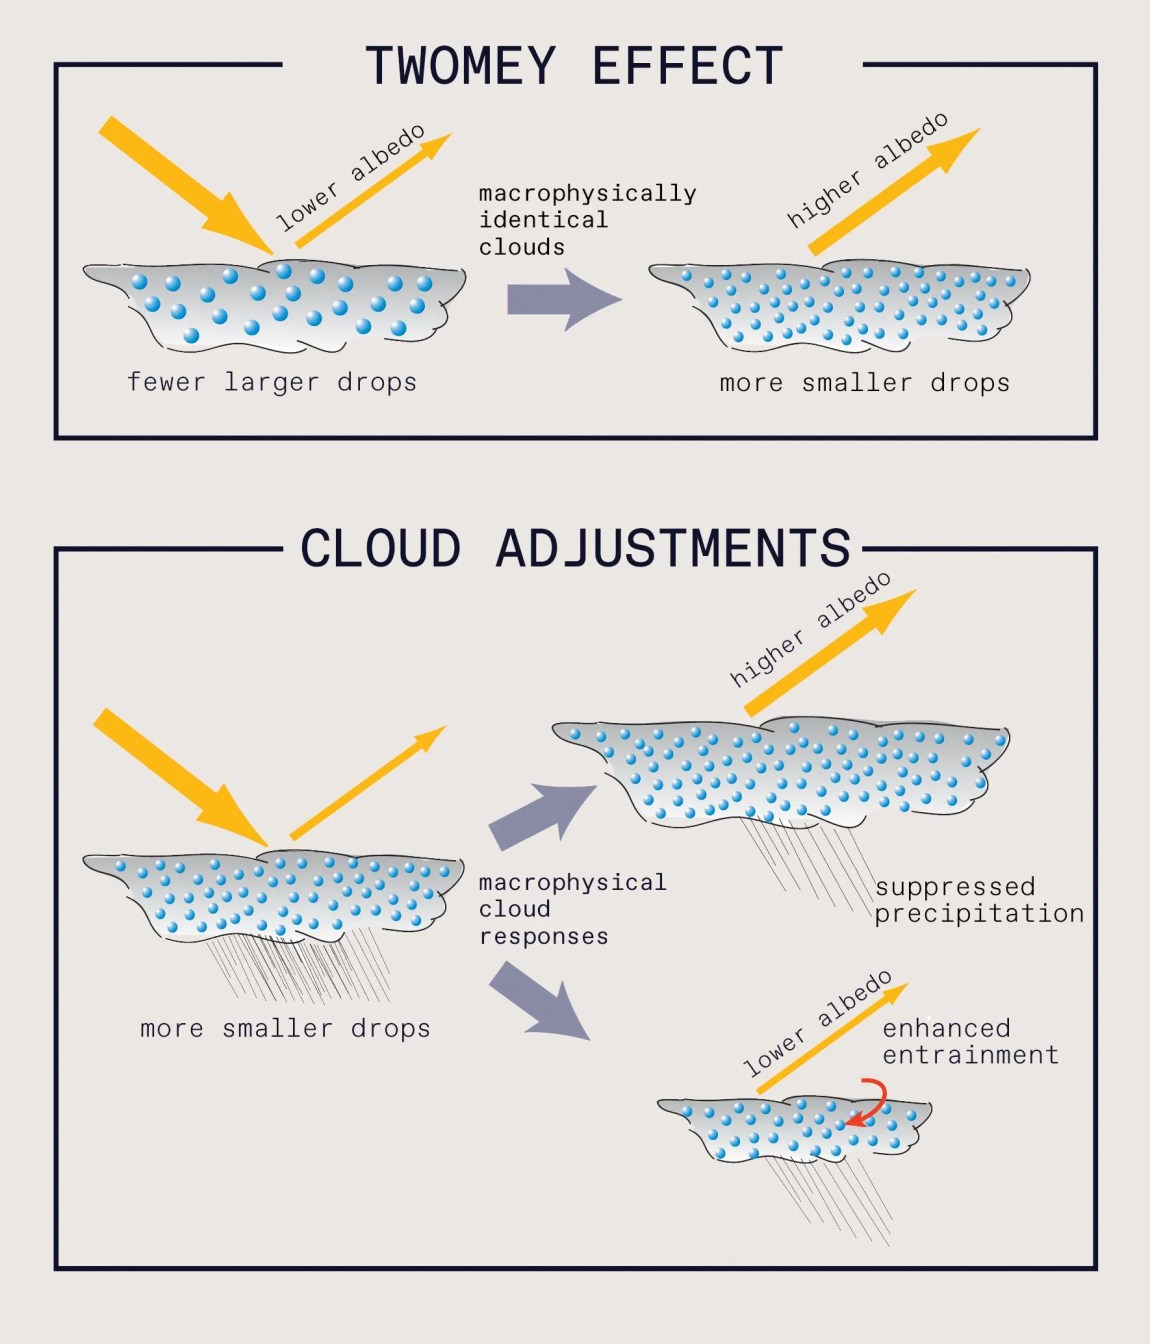 Two part diagram. Top is labelled Twomey Effect. Two cloud shapes with droplets, and the left says